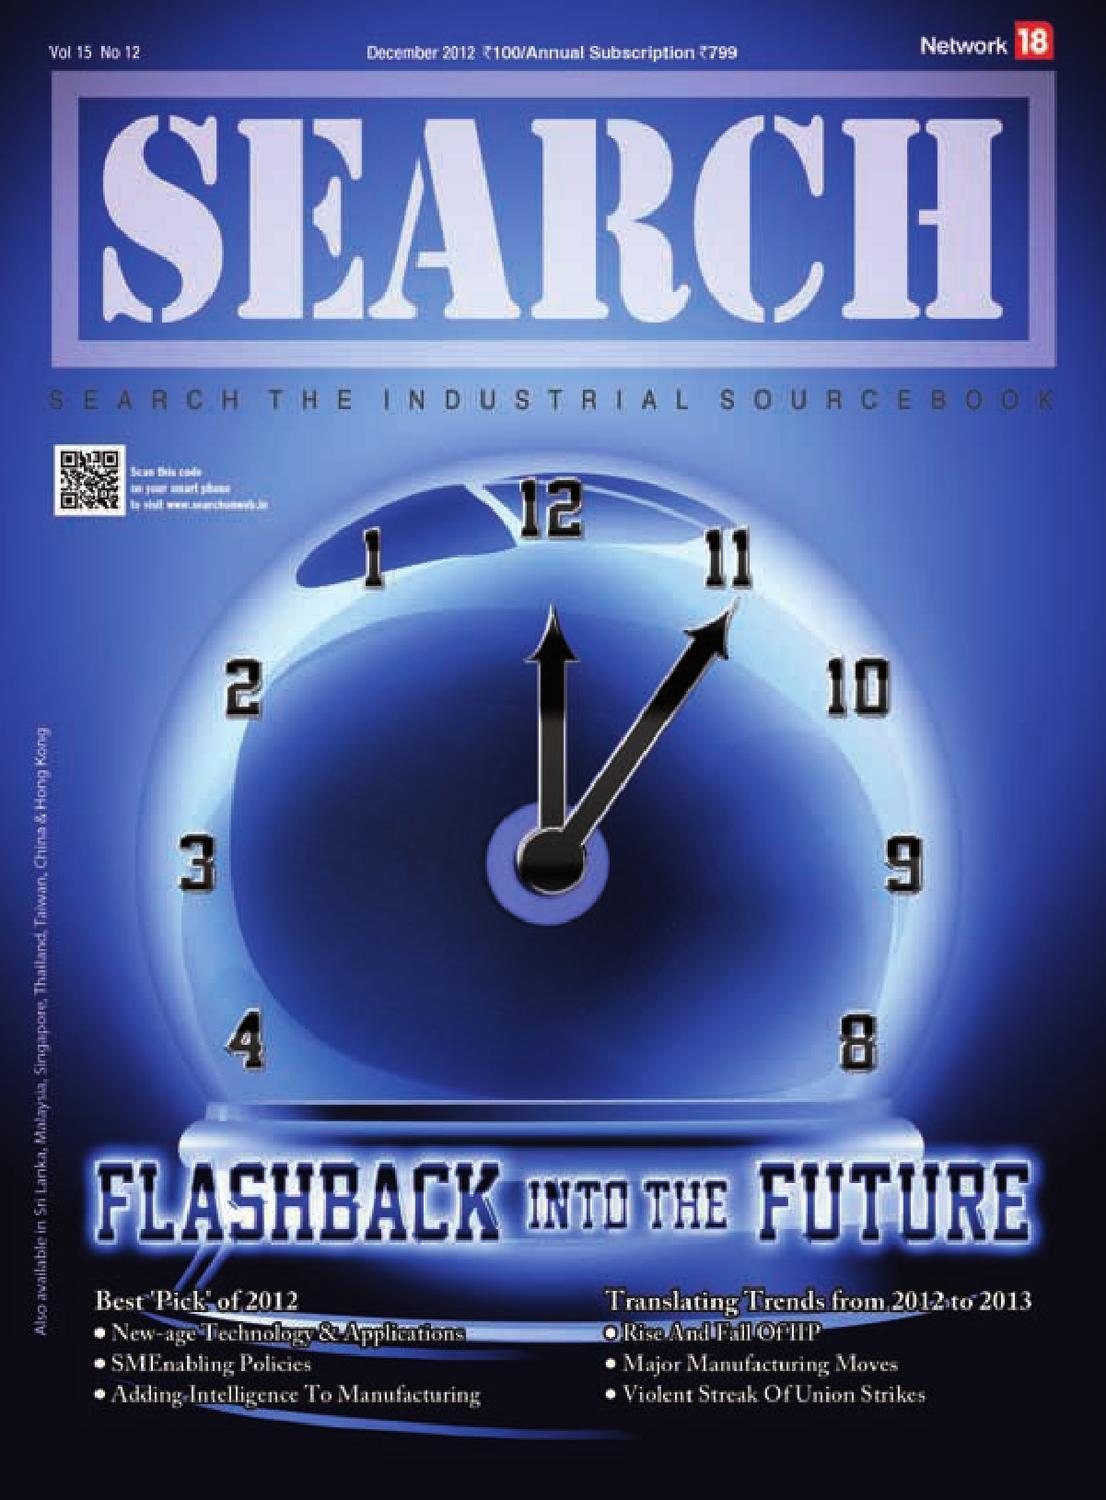 Search - December 2012 by Infomedia18 - issuu